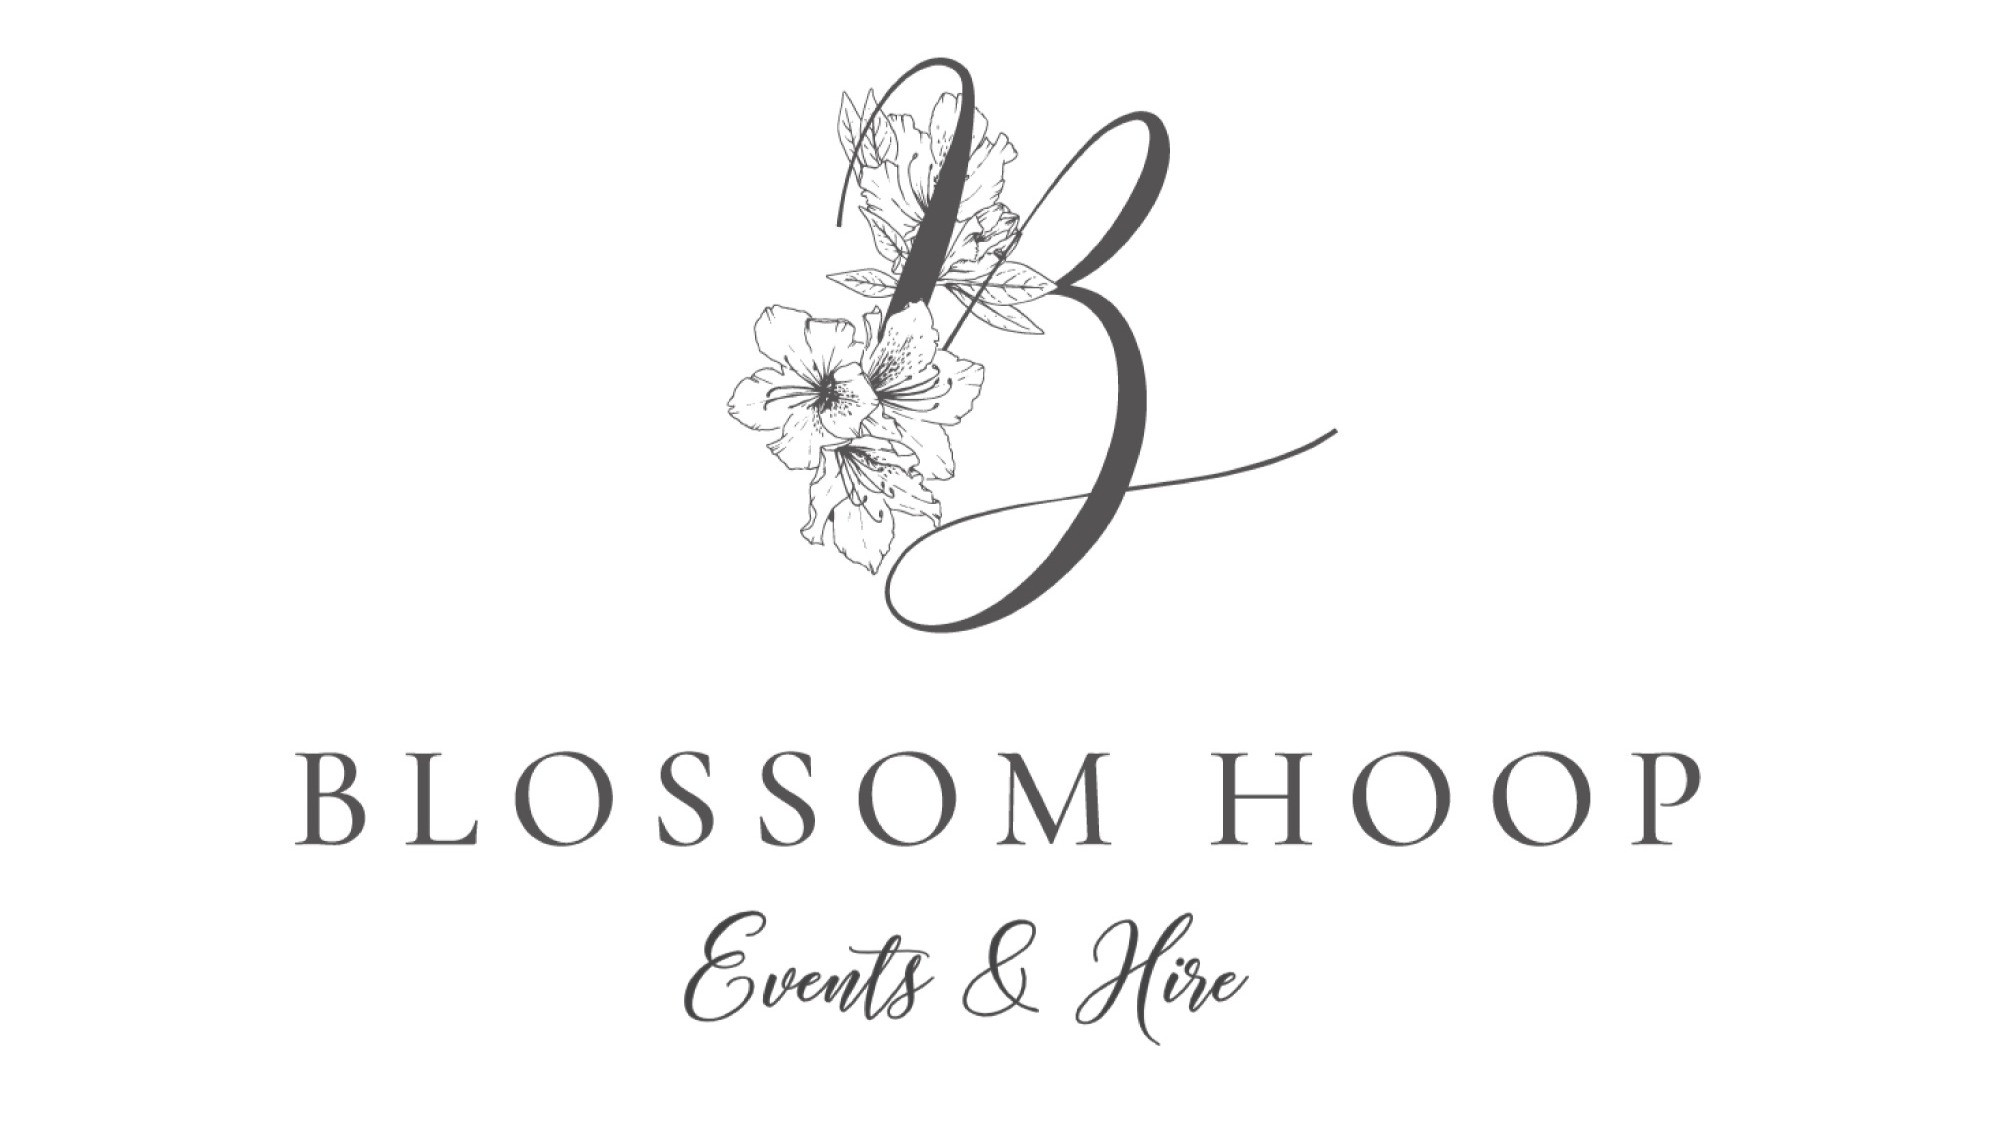 Special Offers | Blossom Hoop